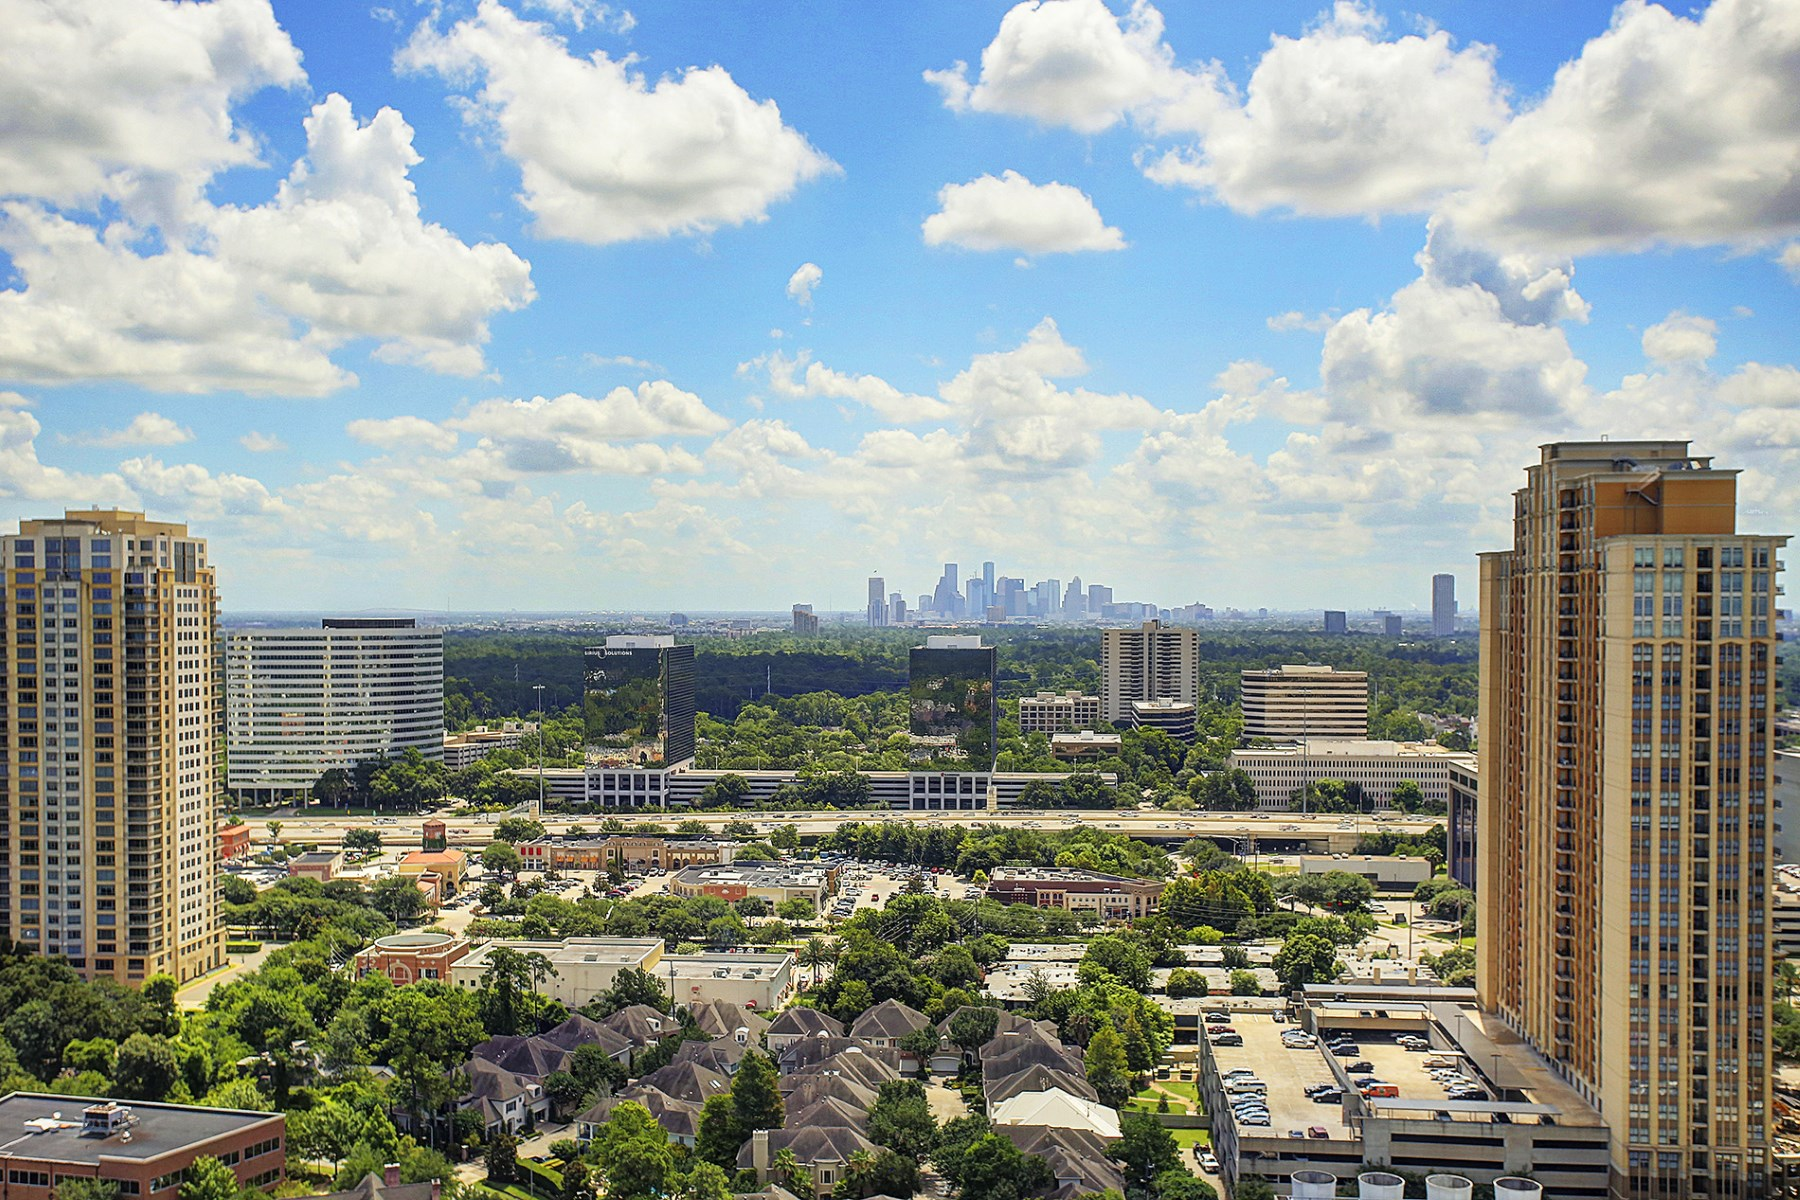 Condominium for Sale at 1275 South Post Oak Lane 1275 South Post Oak Lane Unit 2402 Houston, Texas 77056 United States